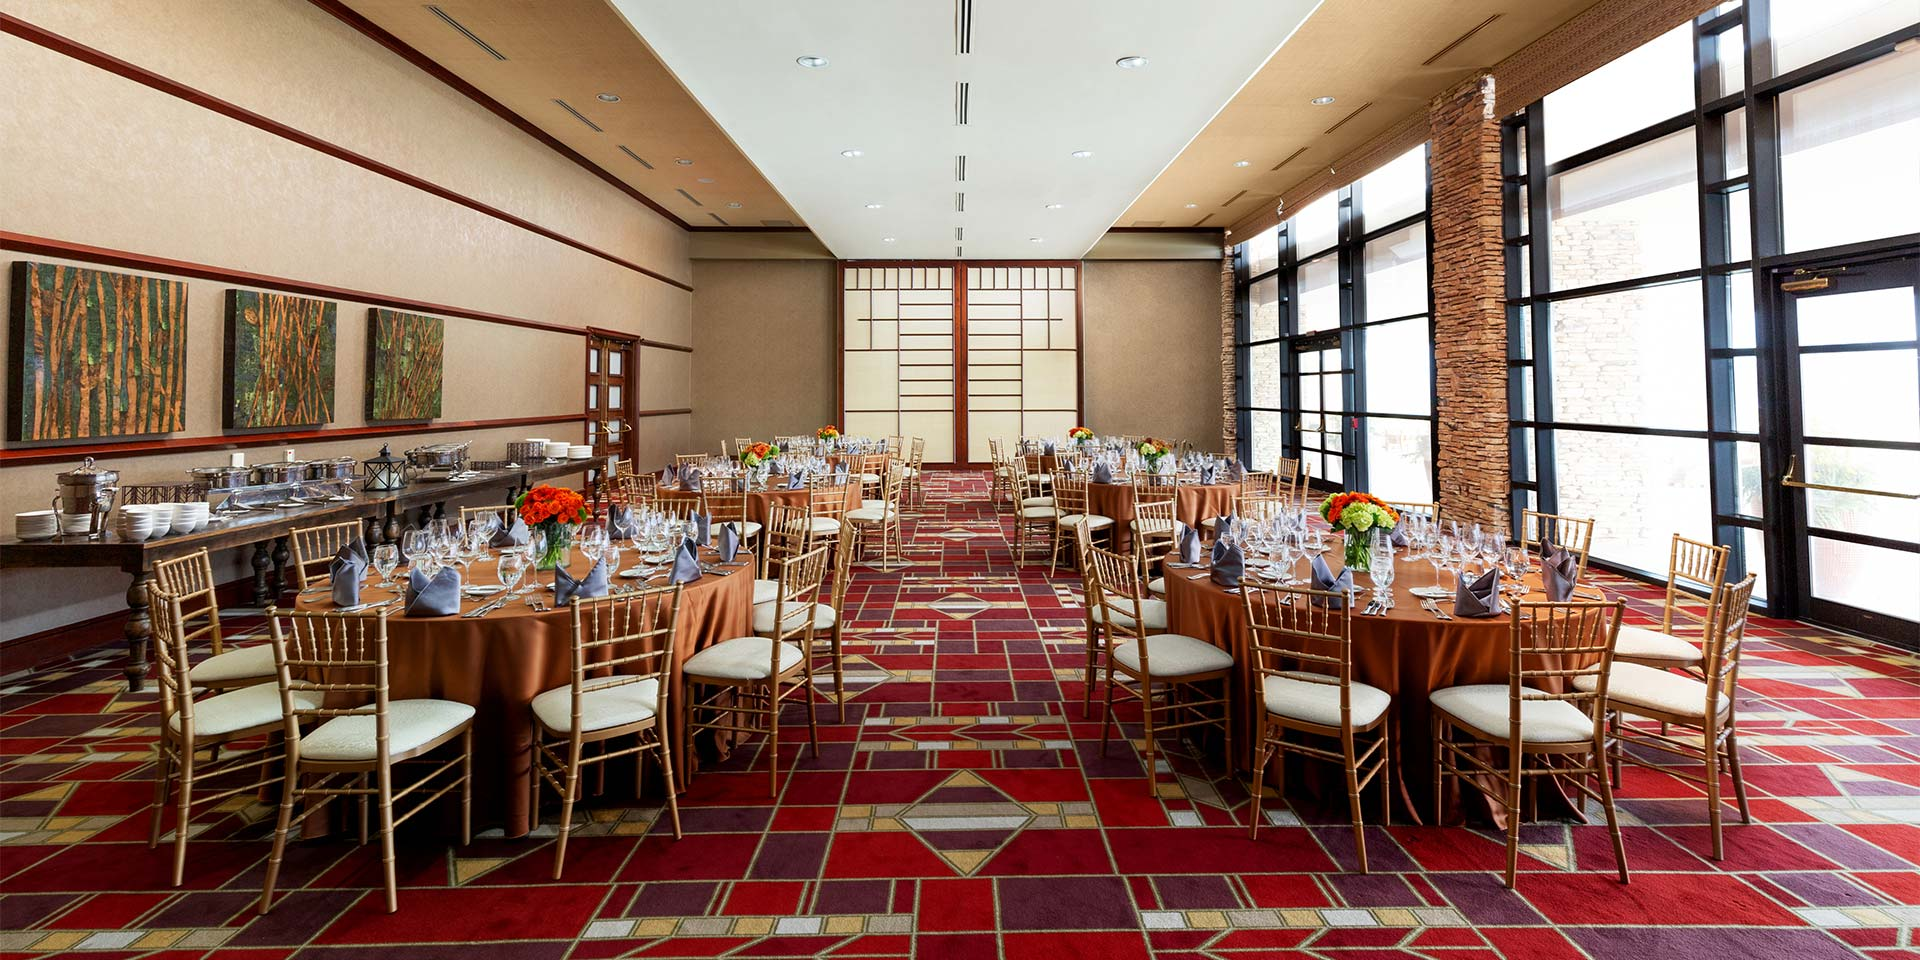 large dining room with red patterned carpet